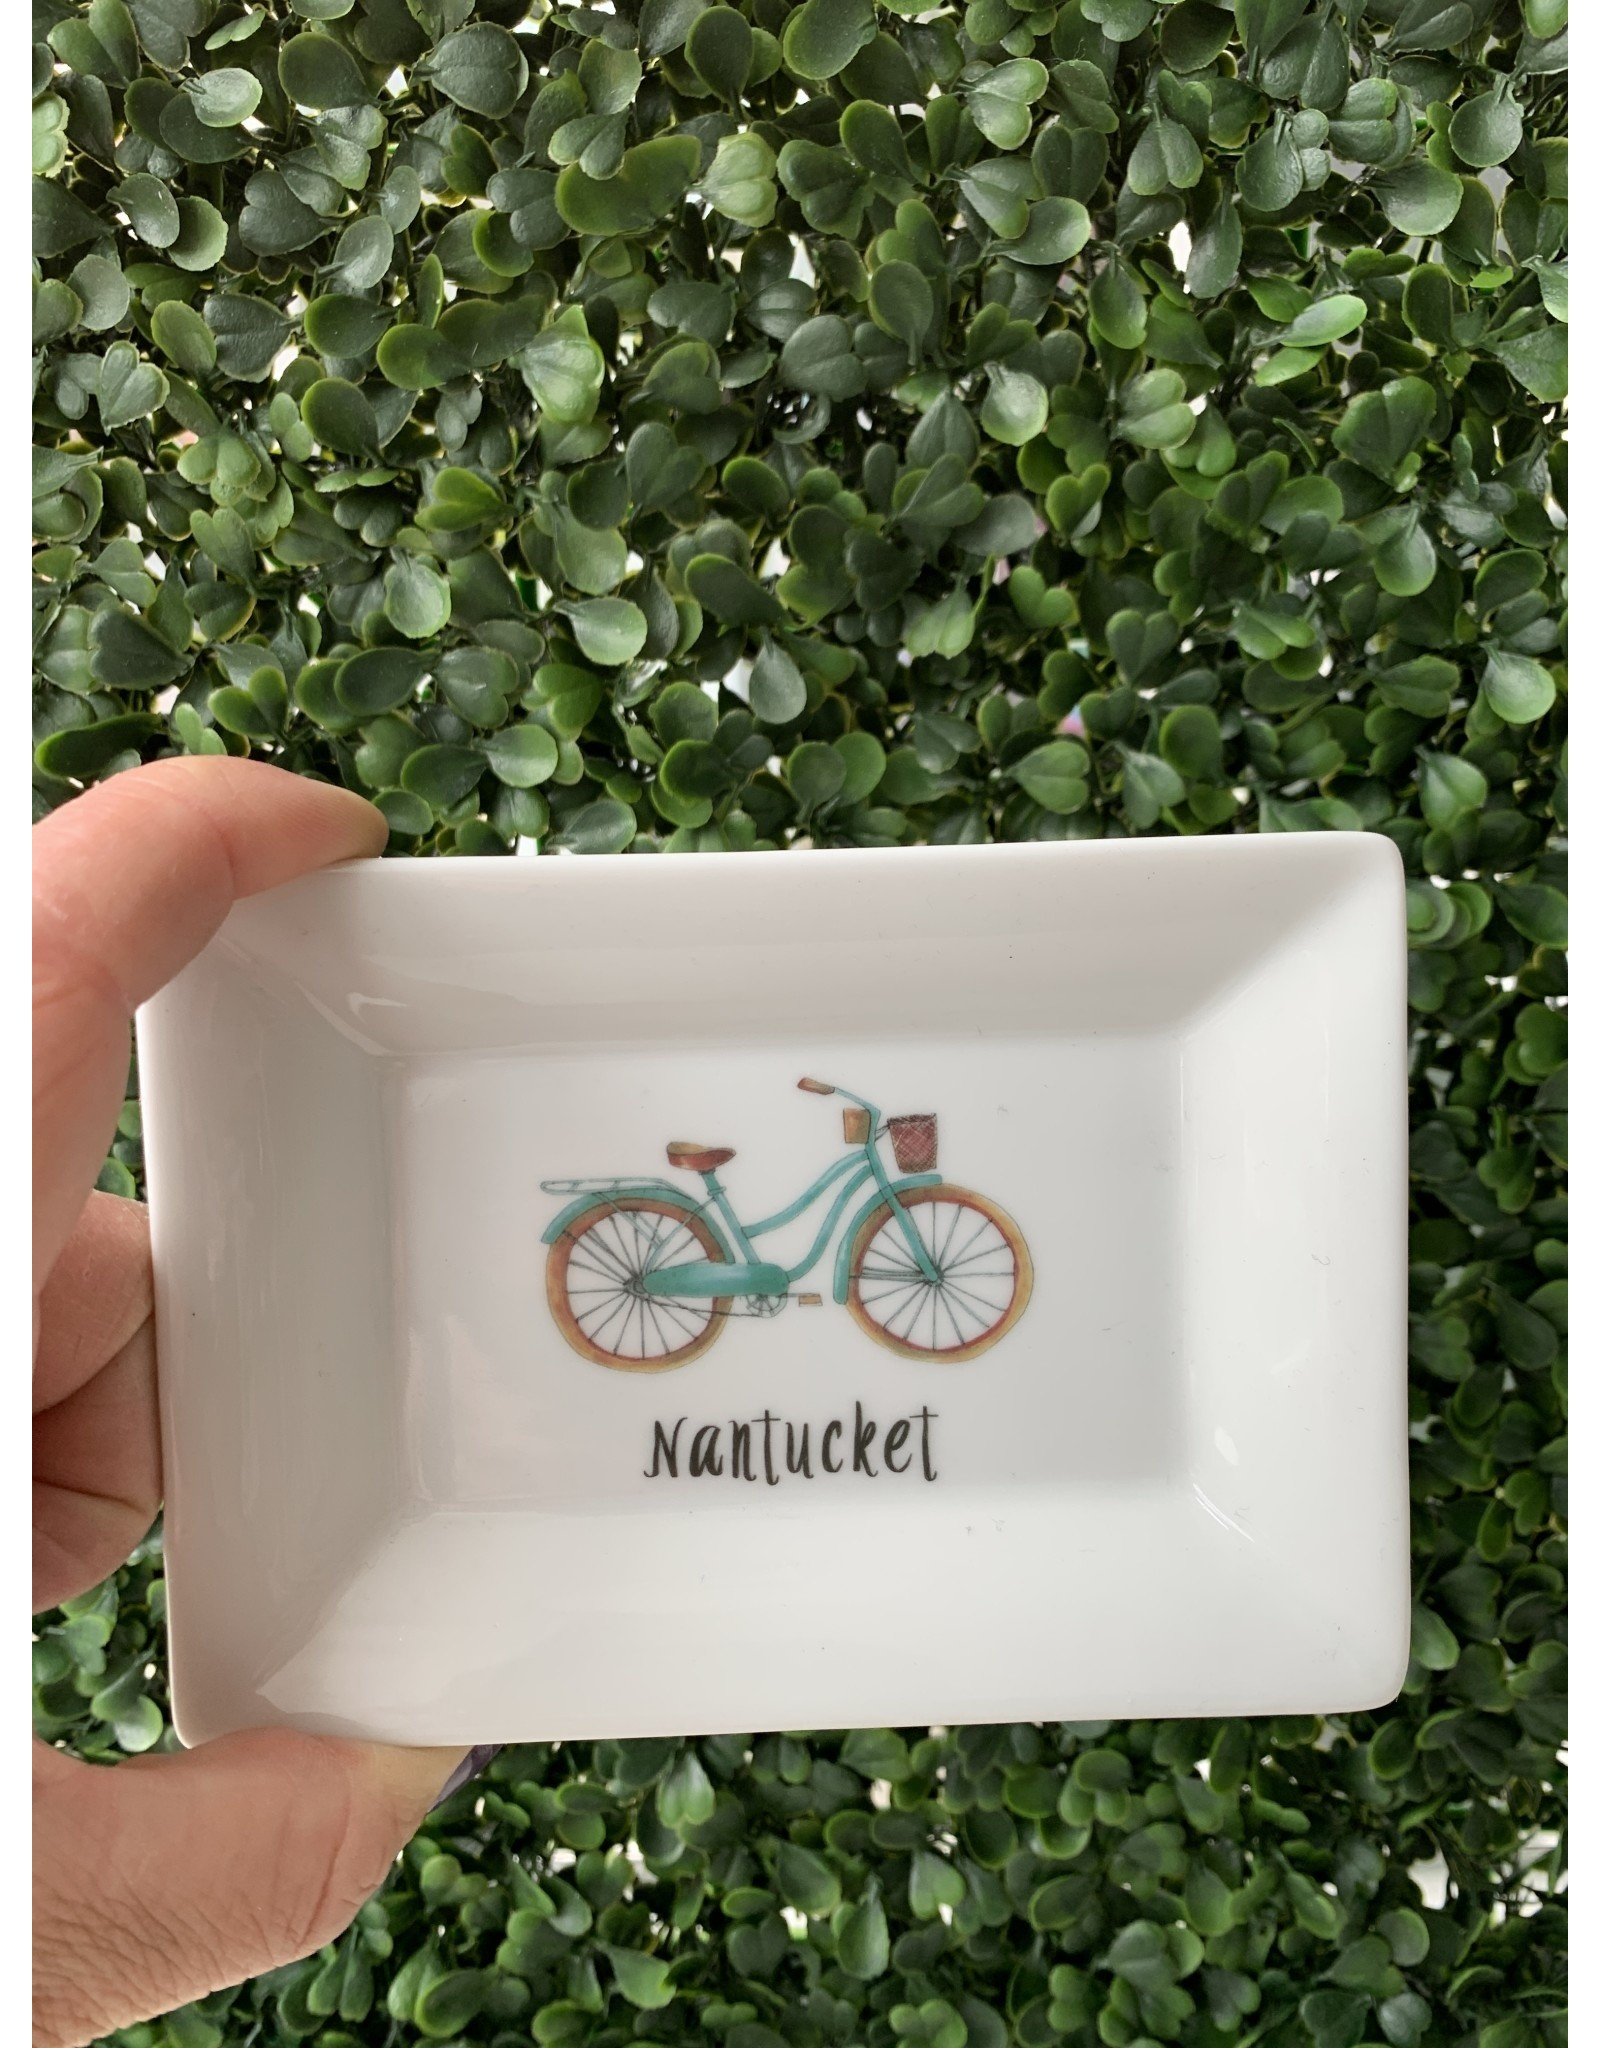 Dishique Nantucket Mini Dish Bike